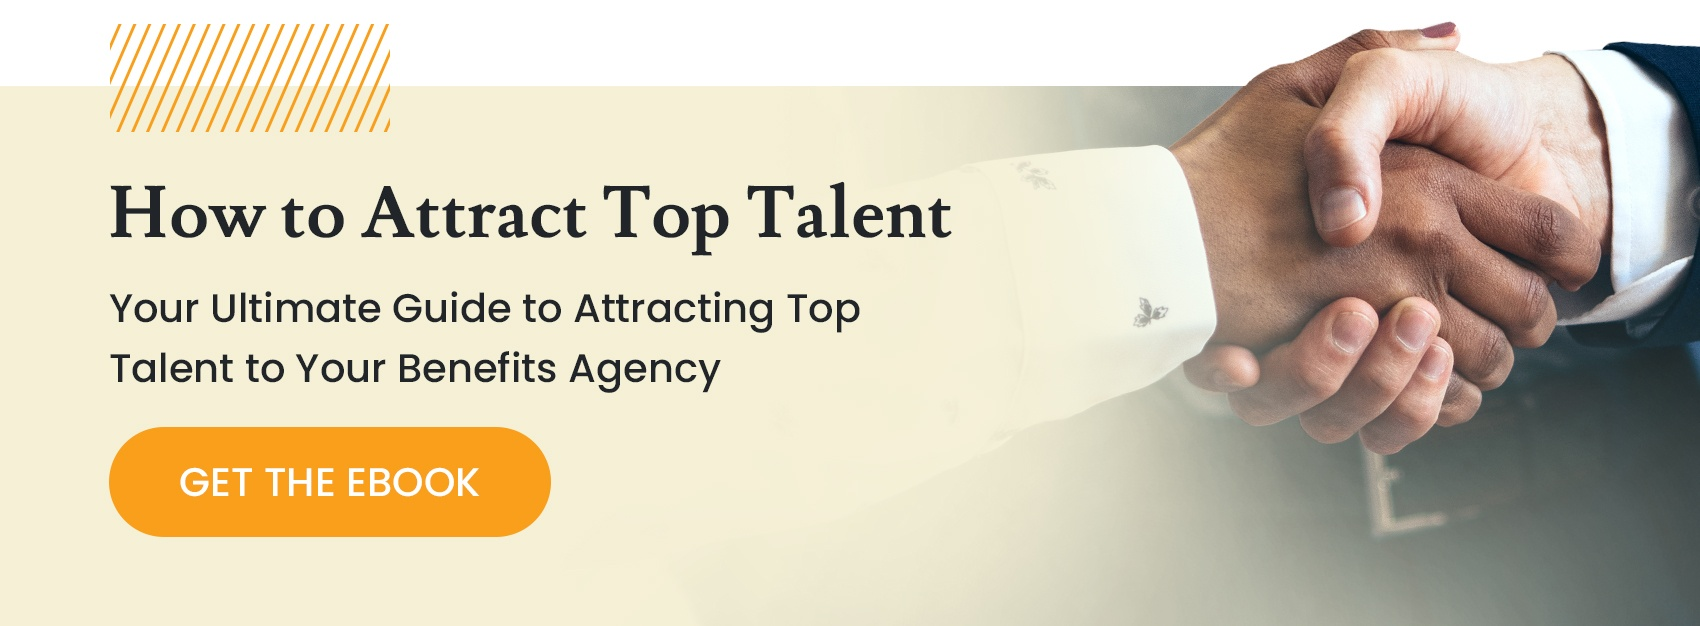 How to Attract Top Talent: Get the eBook